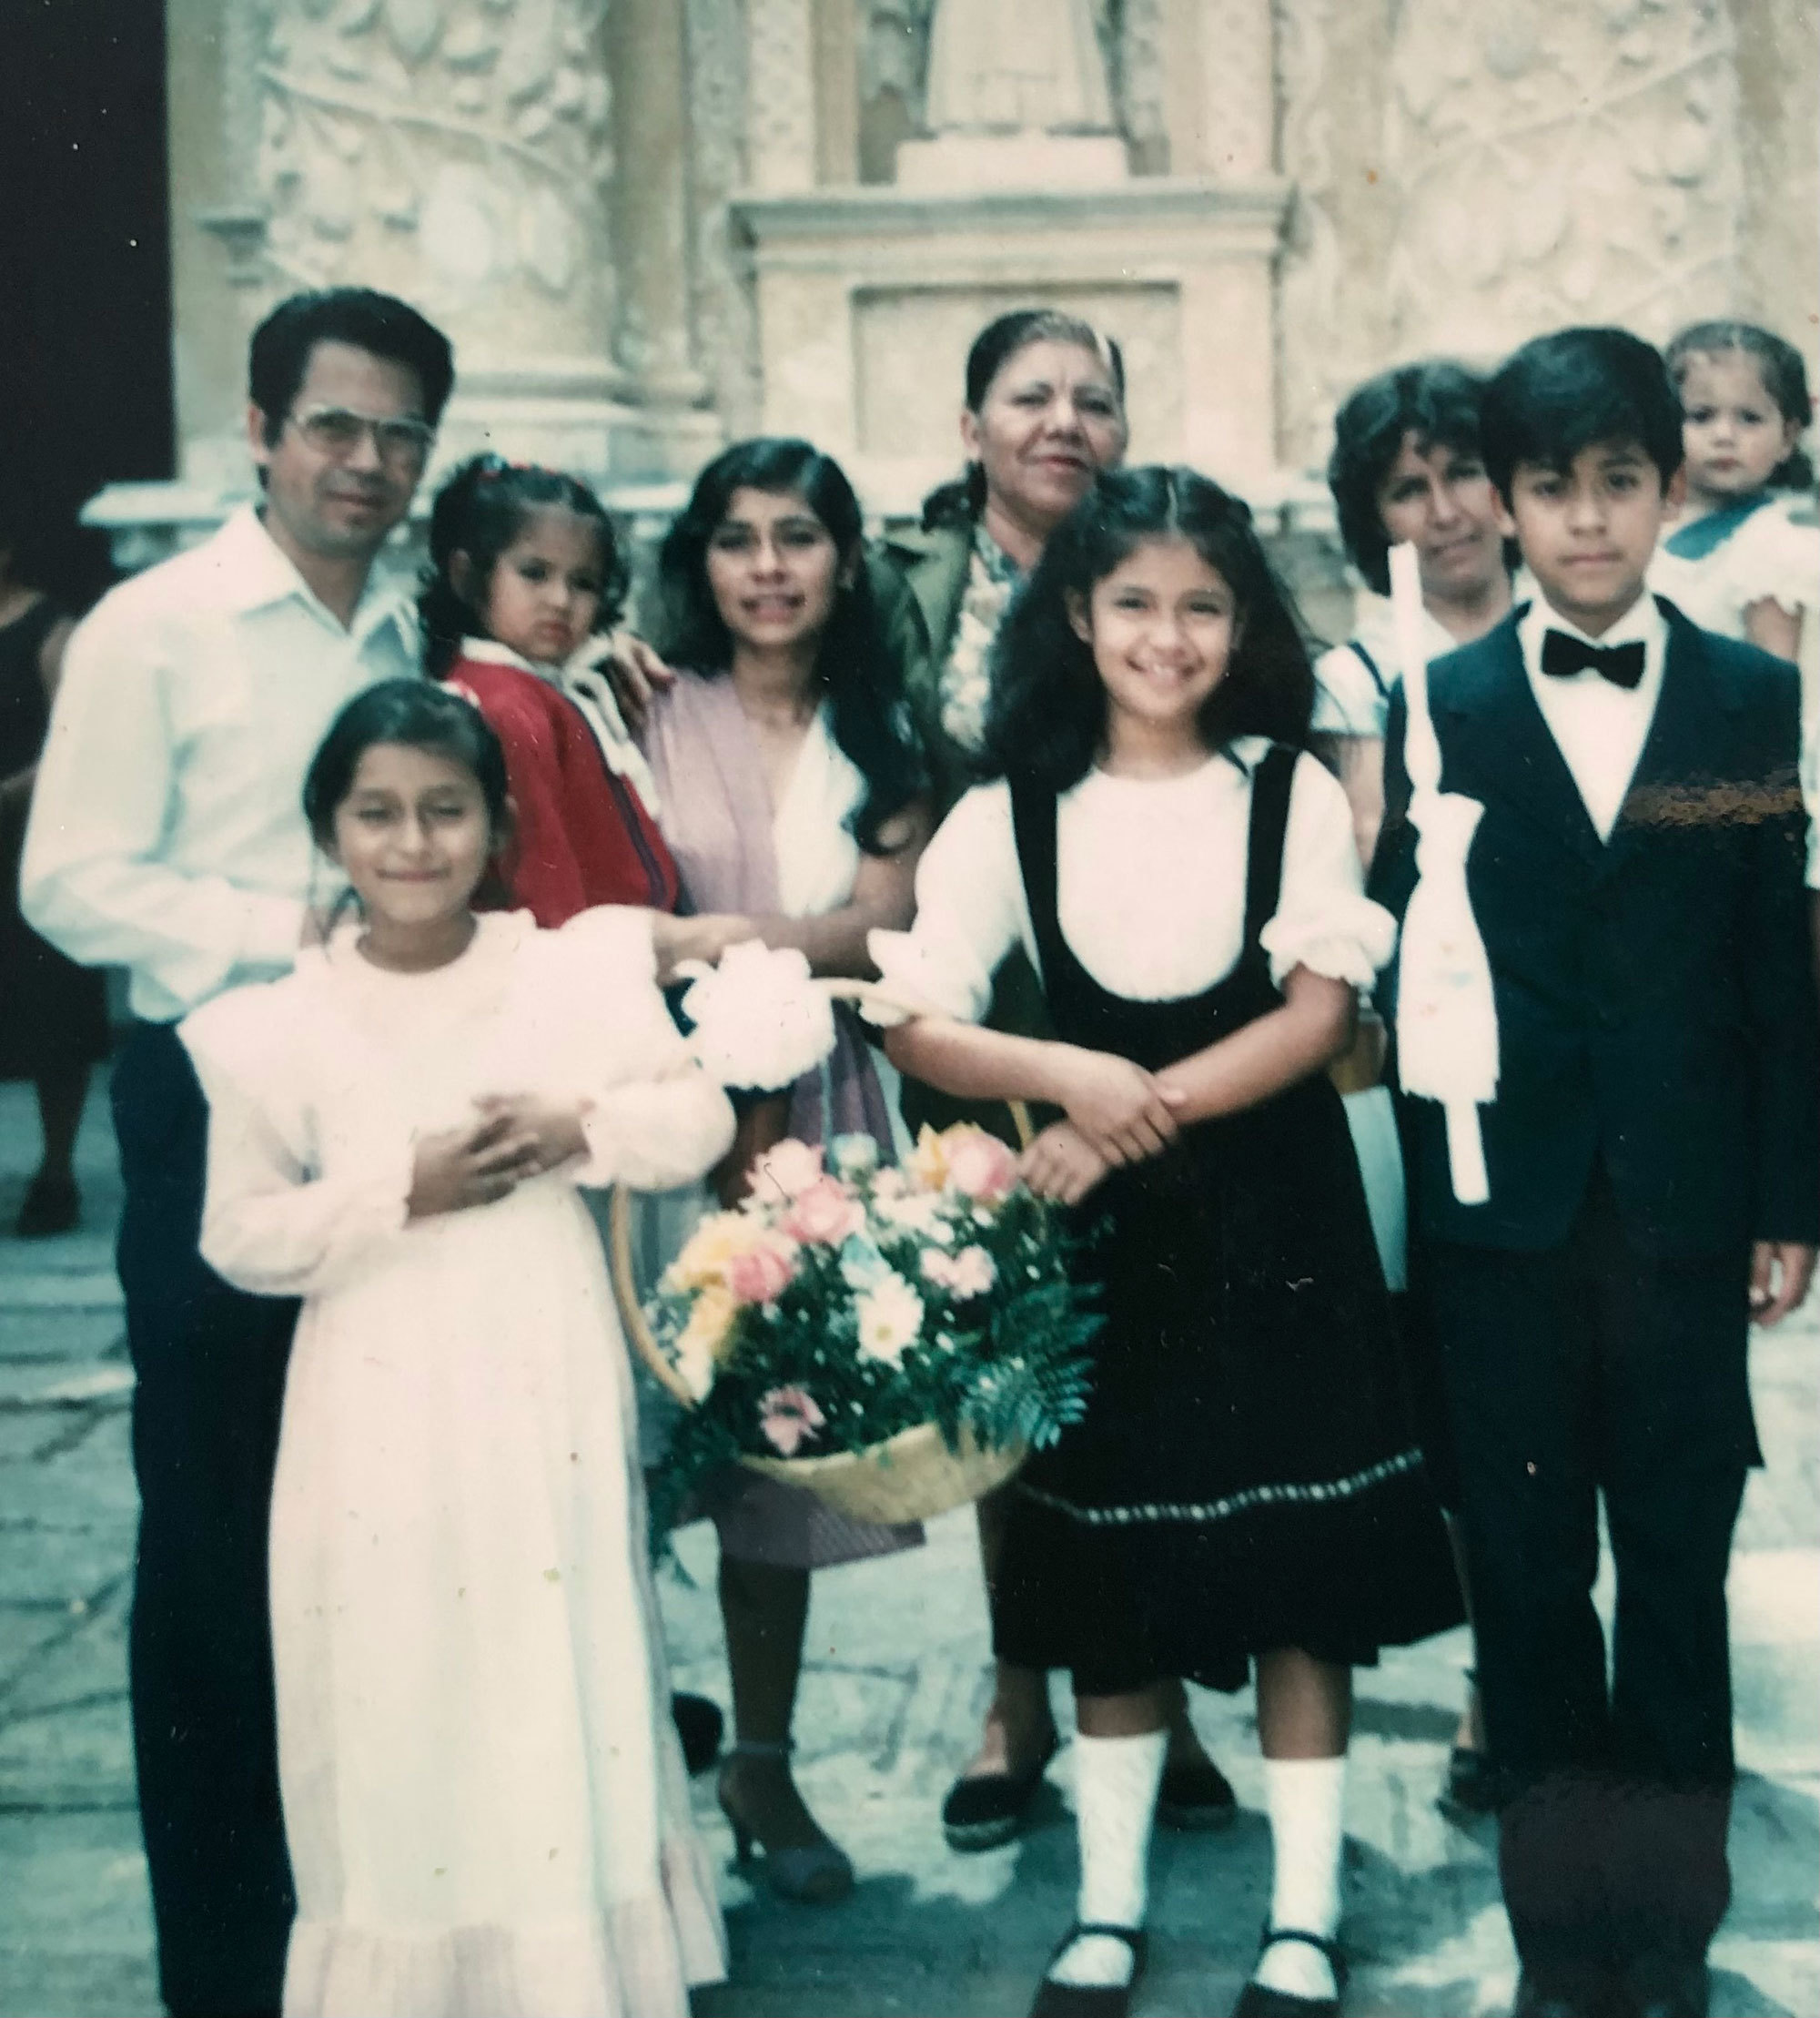 Dr. Orencio Sosa, left, with his wife, Consuelo, holding their youngest daughter with their three other children in the front row before his disappearance in 1983. (Submitted by Consuelo Pérez)